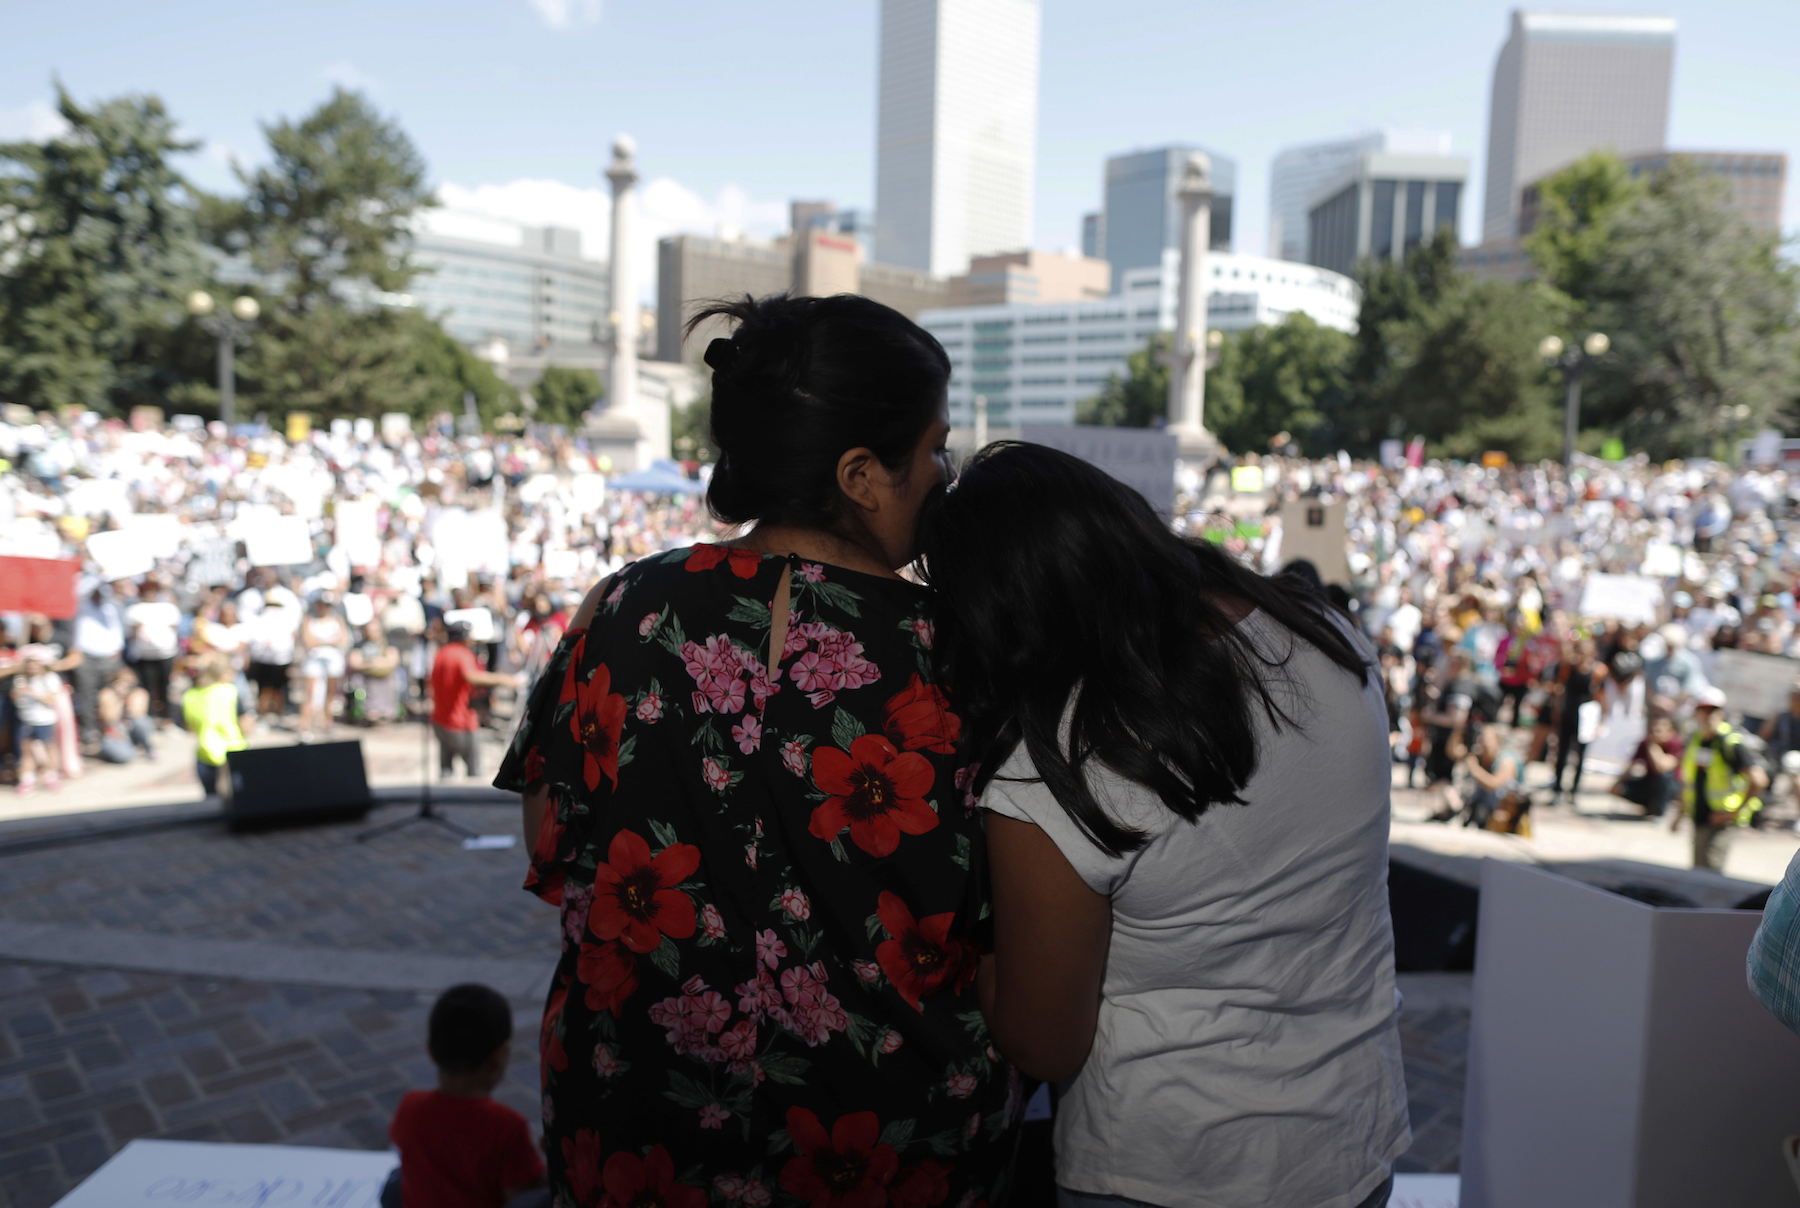 <div class='meta'><div class='origin-logo' data-origin='AP'></div><span class='caption-text' data-credit='AP Photo/David Zalubowski'>Brenda Villa, left, comforts her 11-year-old daughter, Kathryn, after speaking during an immigration rally and protest in Civic Center Park Saturday, June 30, 2018, in Denver.</span></div>